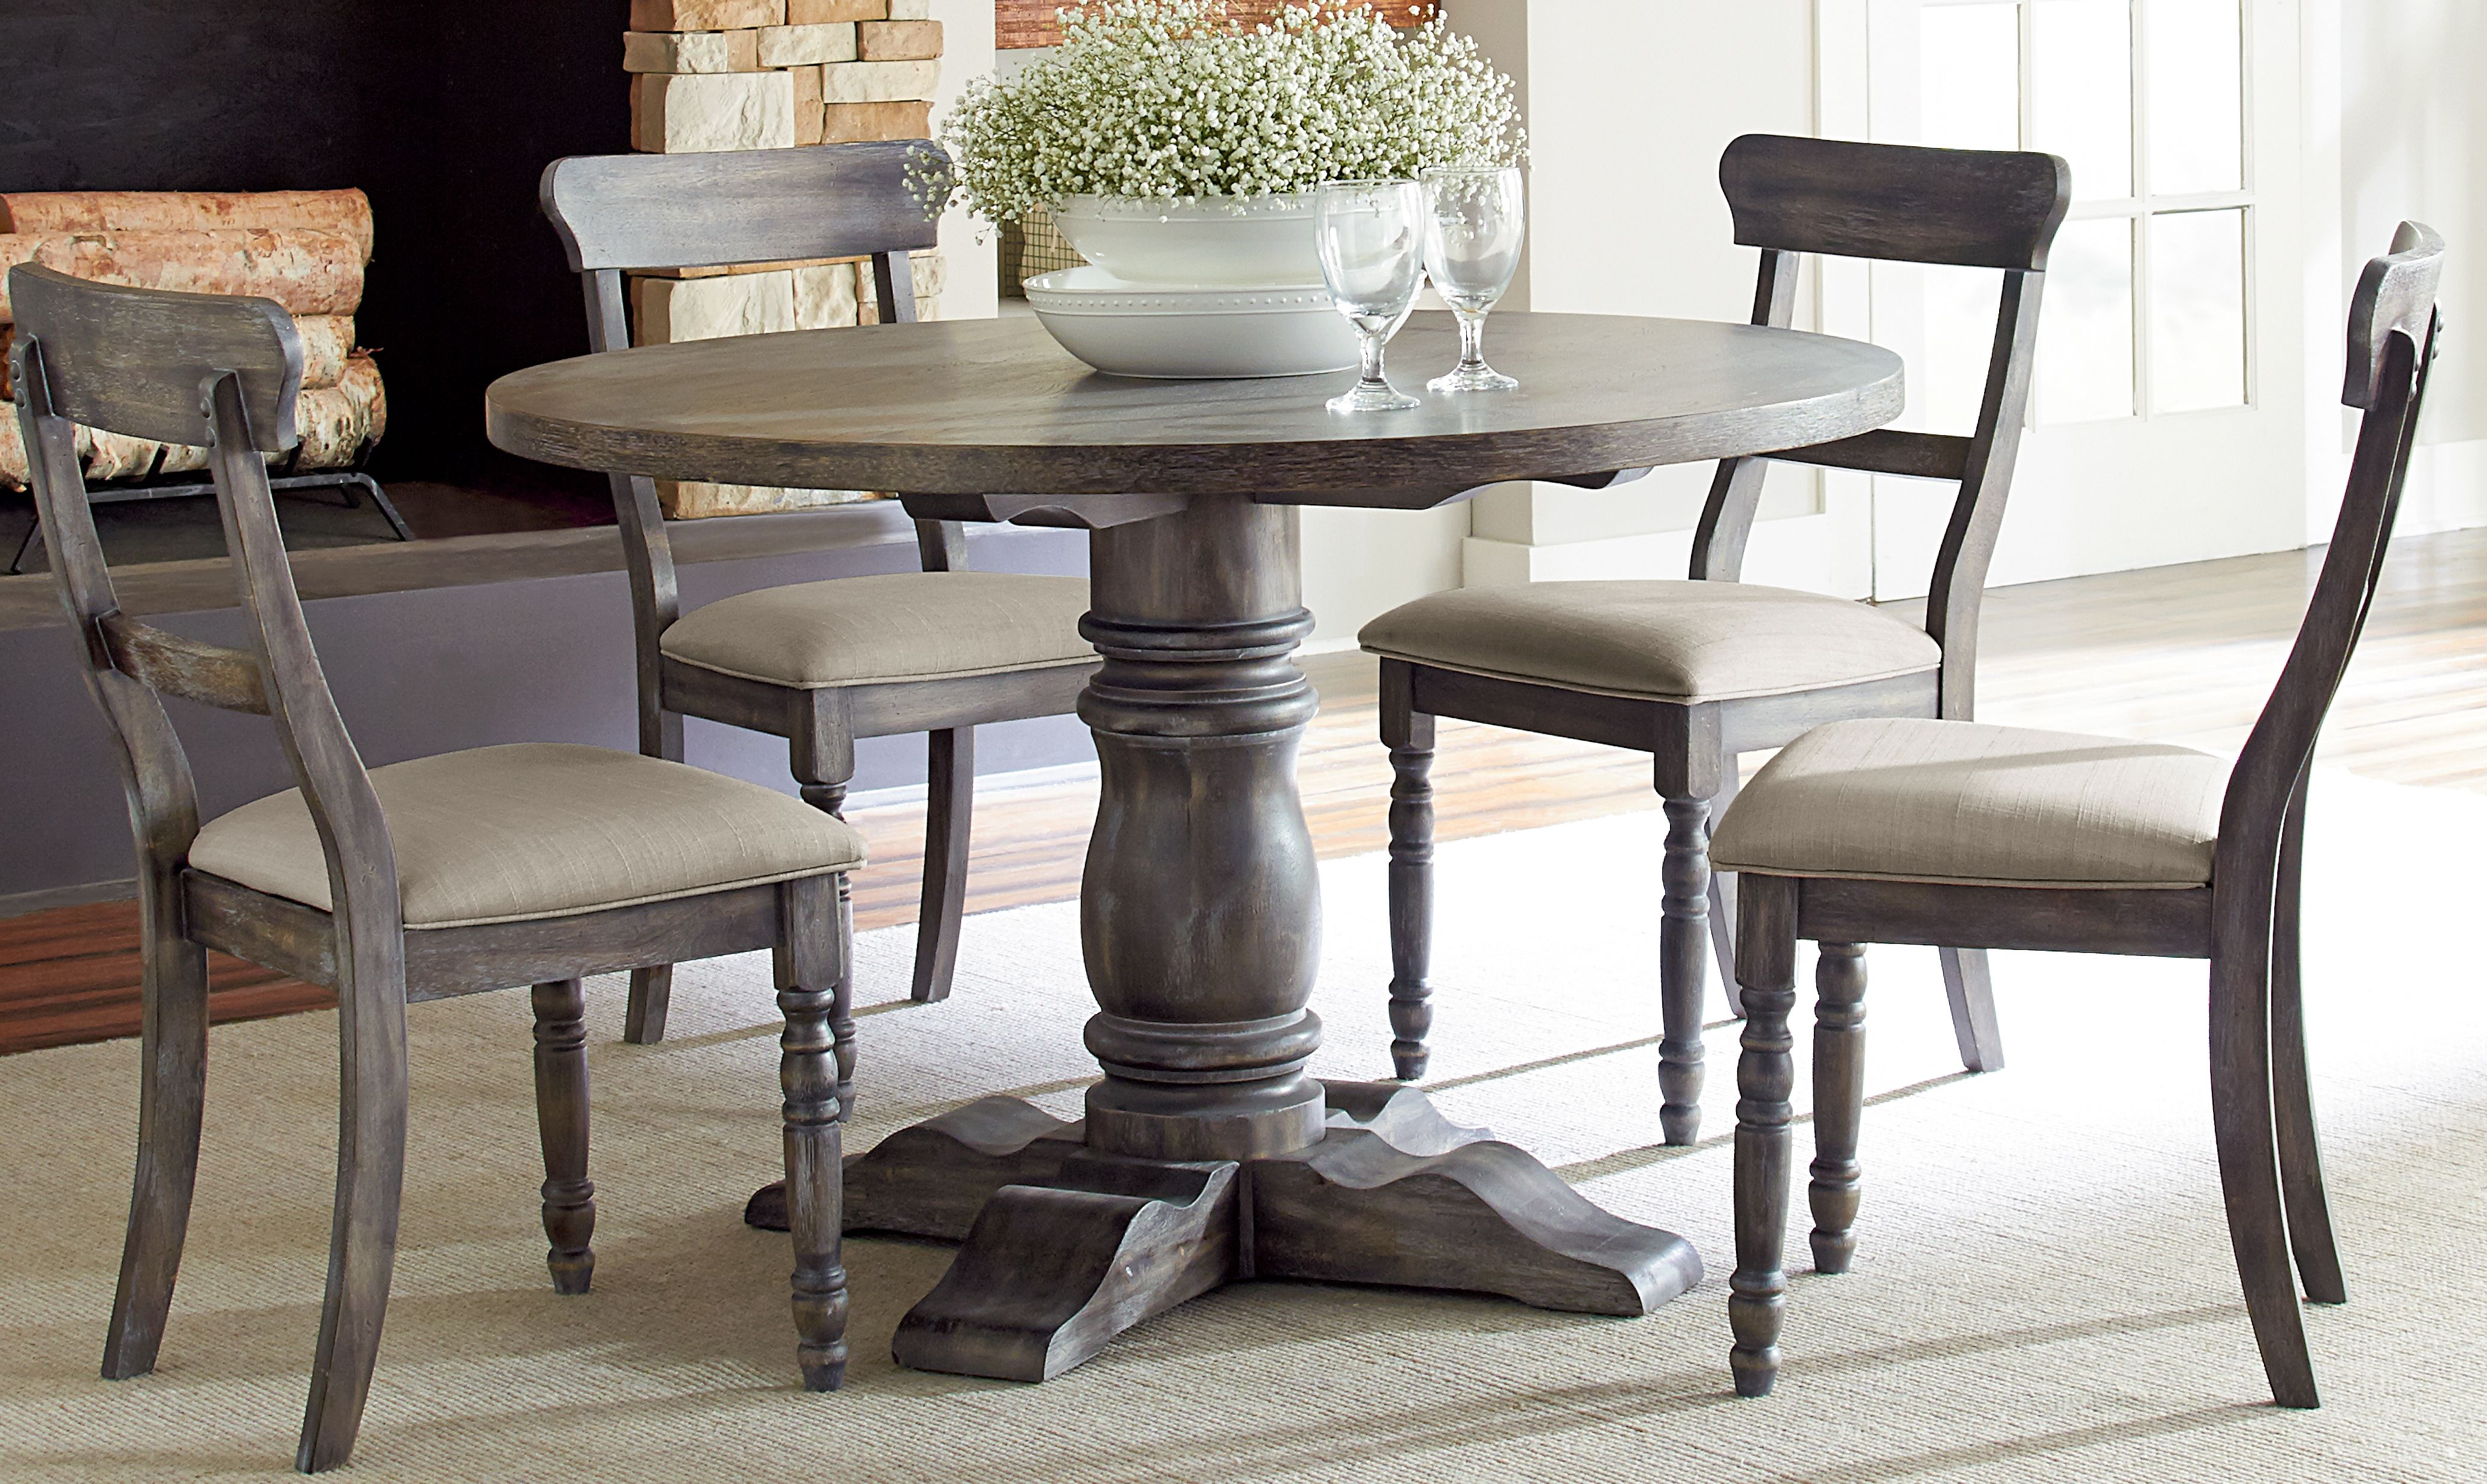 Round Dining Table And Chairs Modern Rustic Brushed Gray Finish Dining Table Sales Furniture Jeudzik Round Dining Room Sets Round Dining Table Sets Grey Round Dining Table